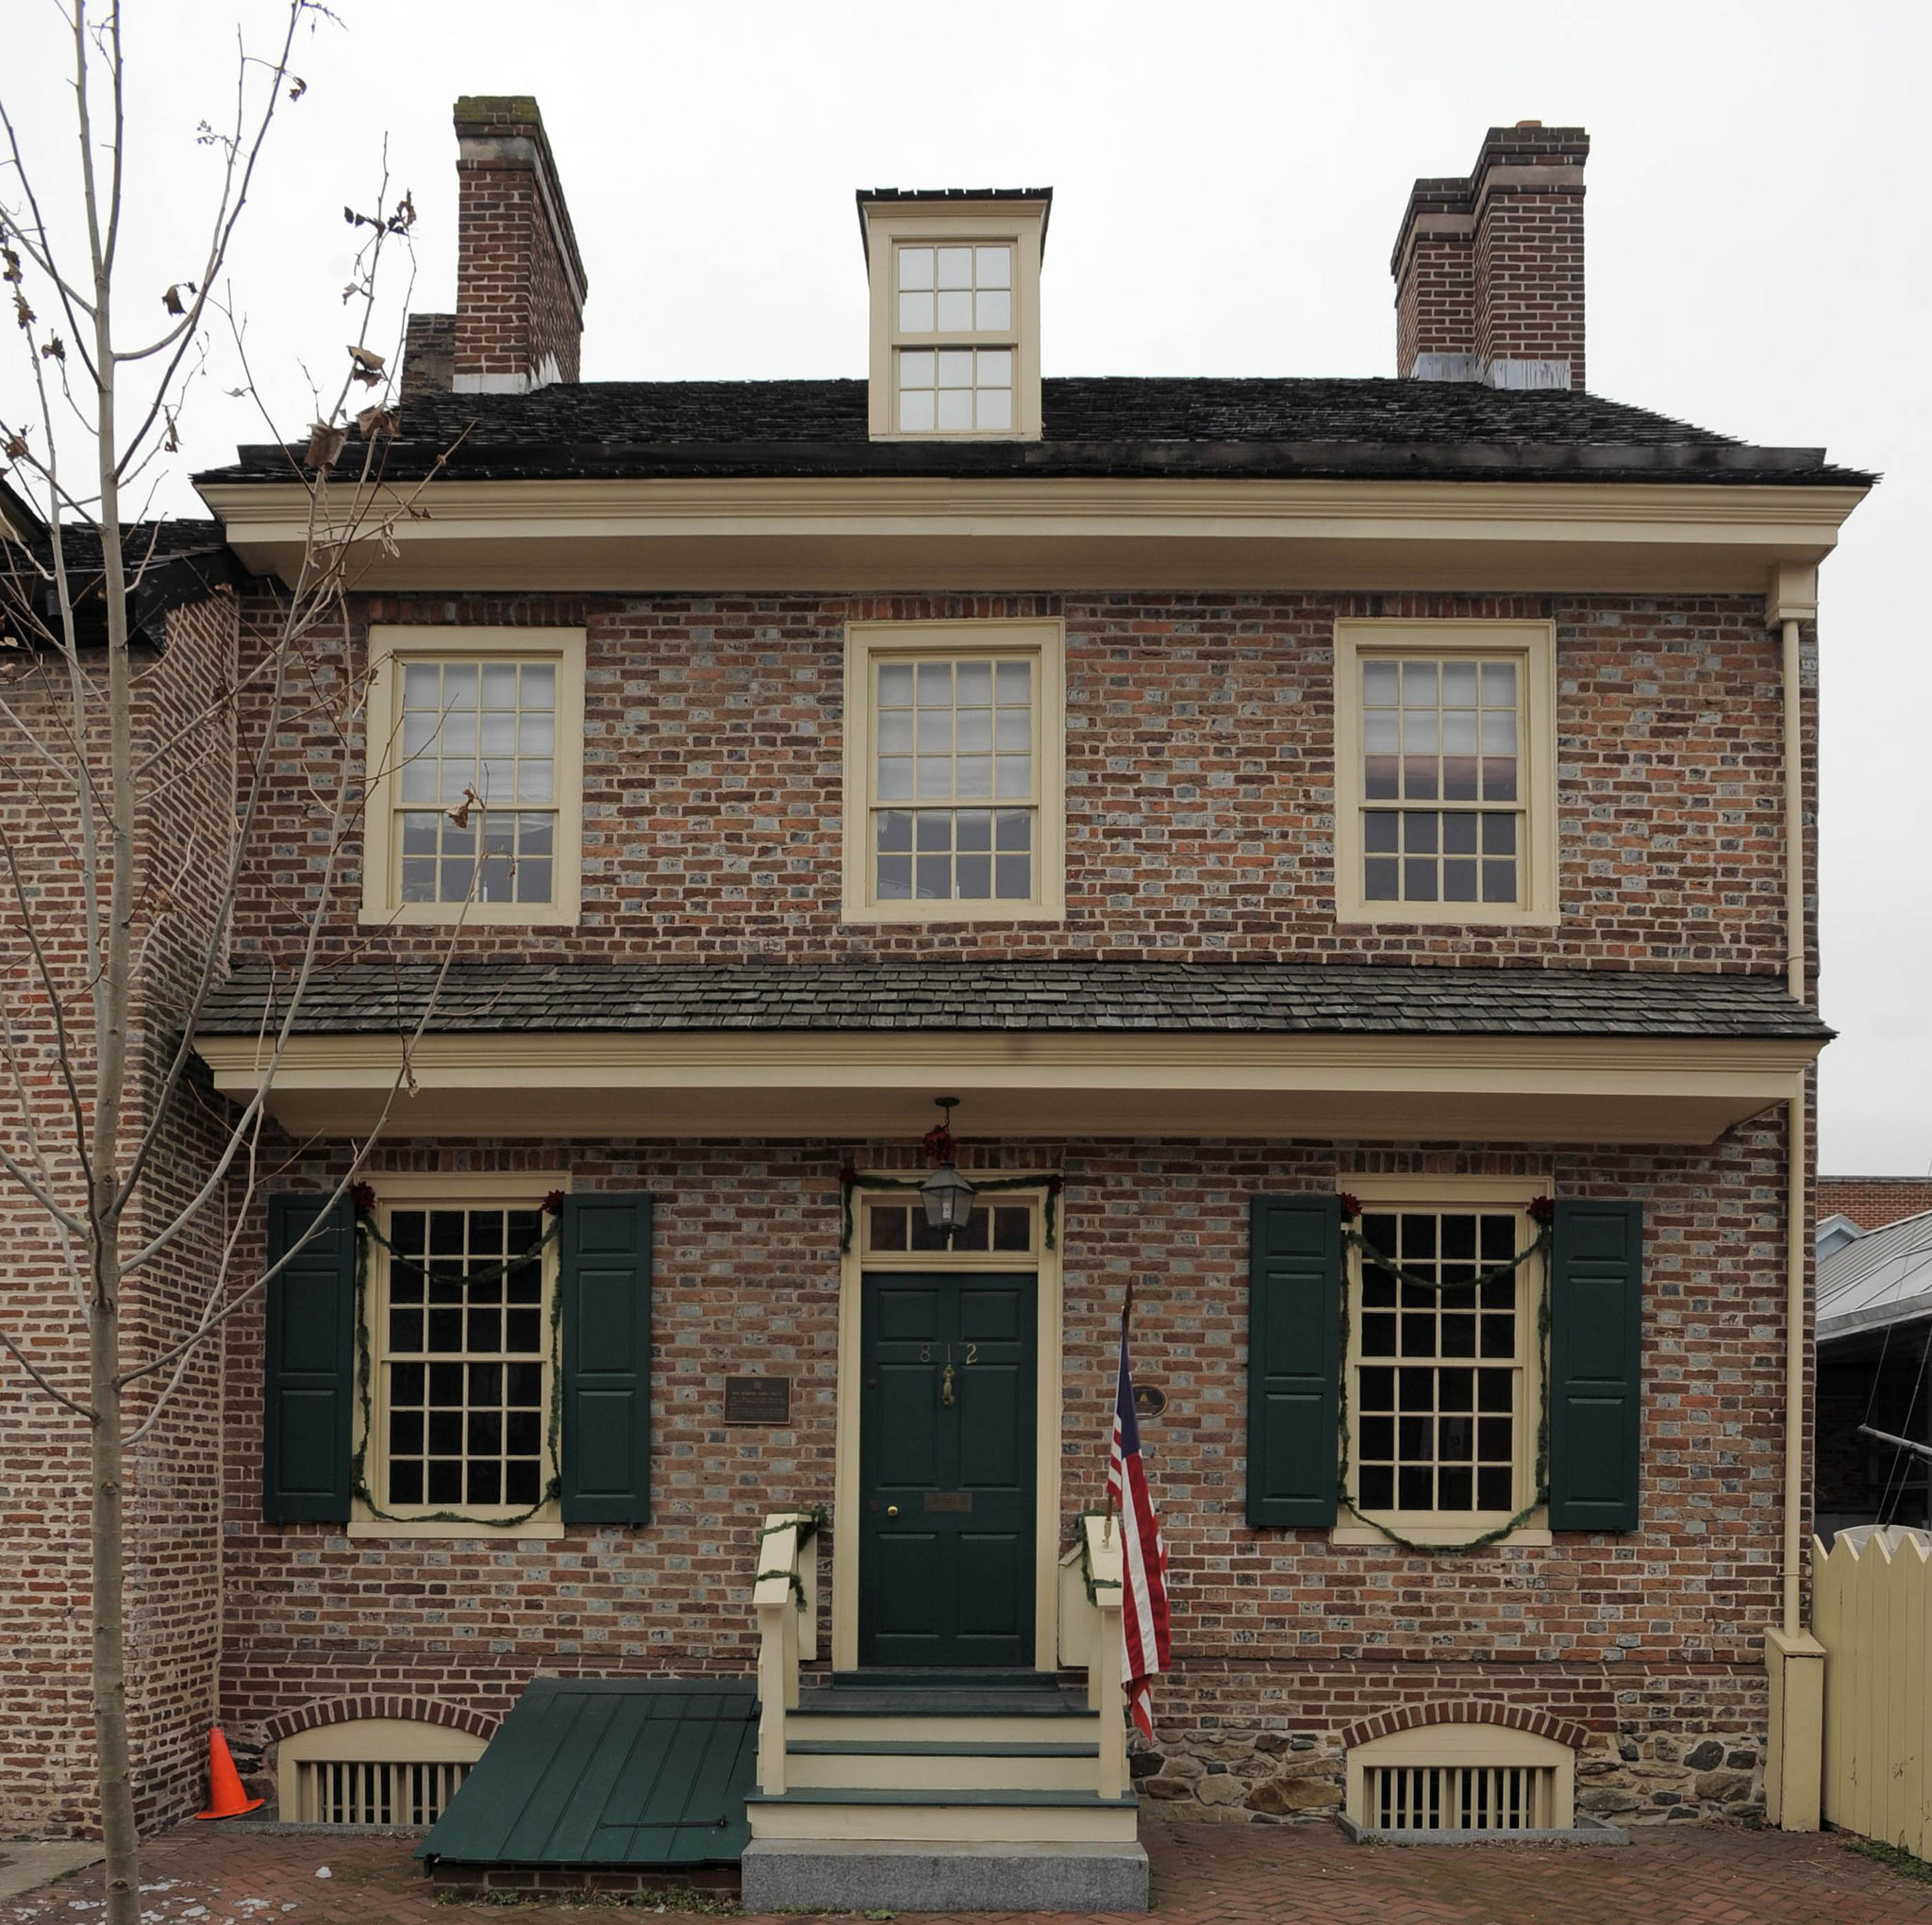 Robert Long House in Fells Point marks 250th anniversary - Baltimore Sun